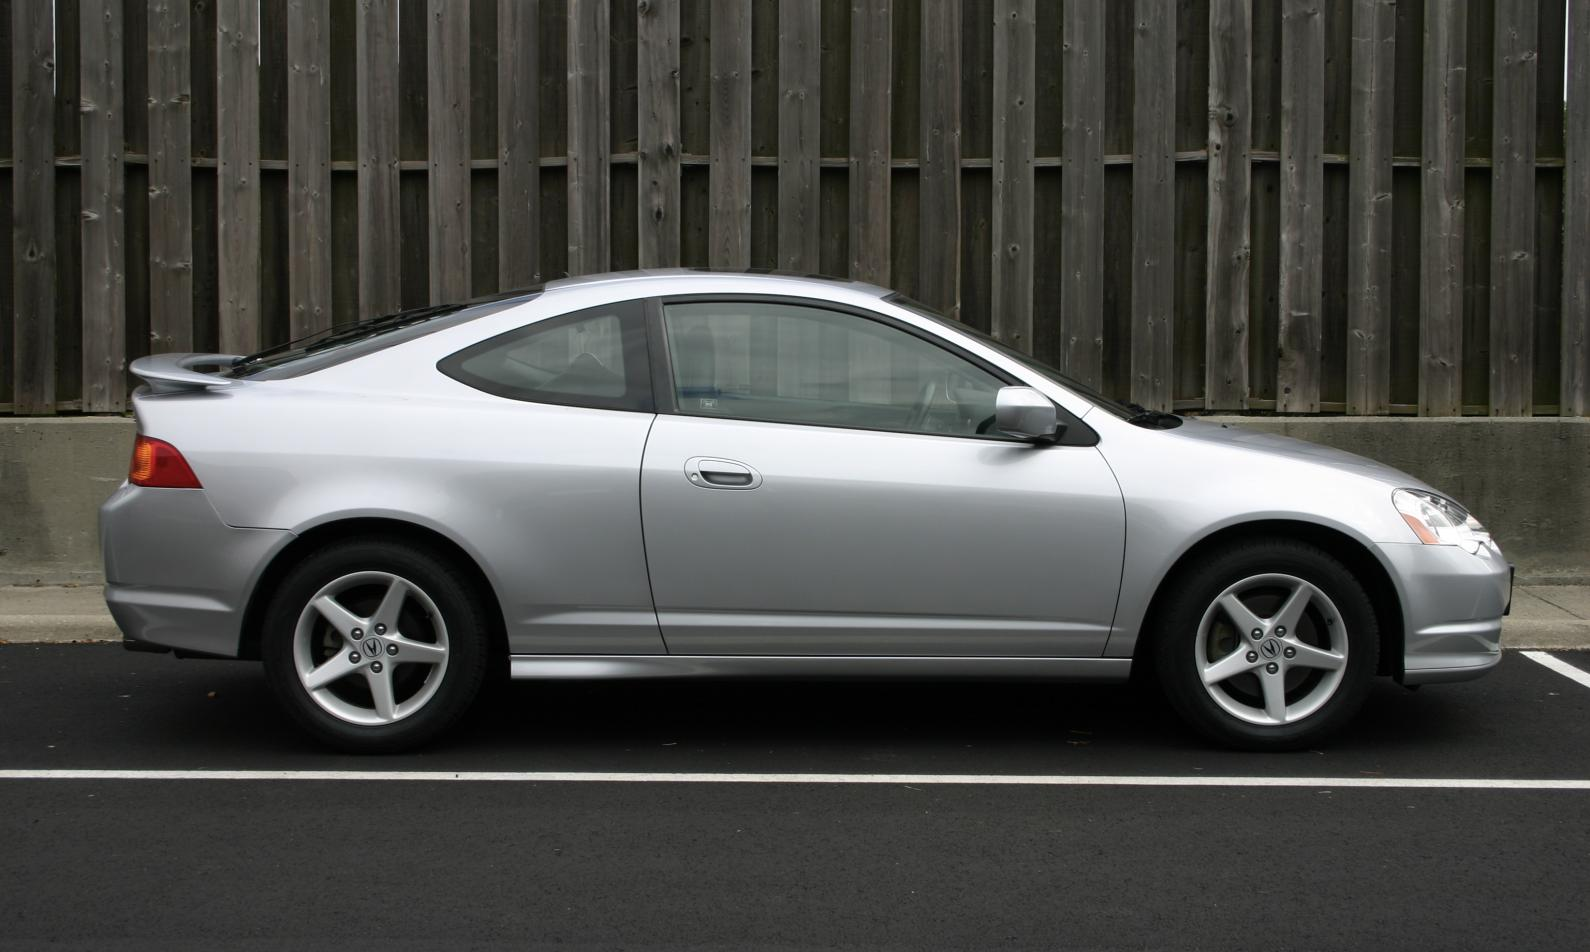 2002 acura rsx information and photos zombiedrive. Black Bedroom Furniture Sets. Home Design Ideas